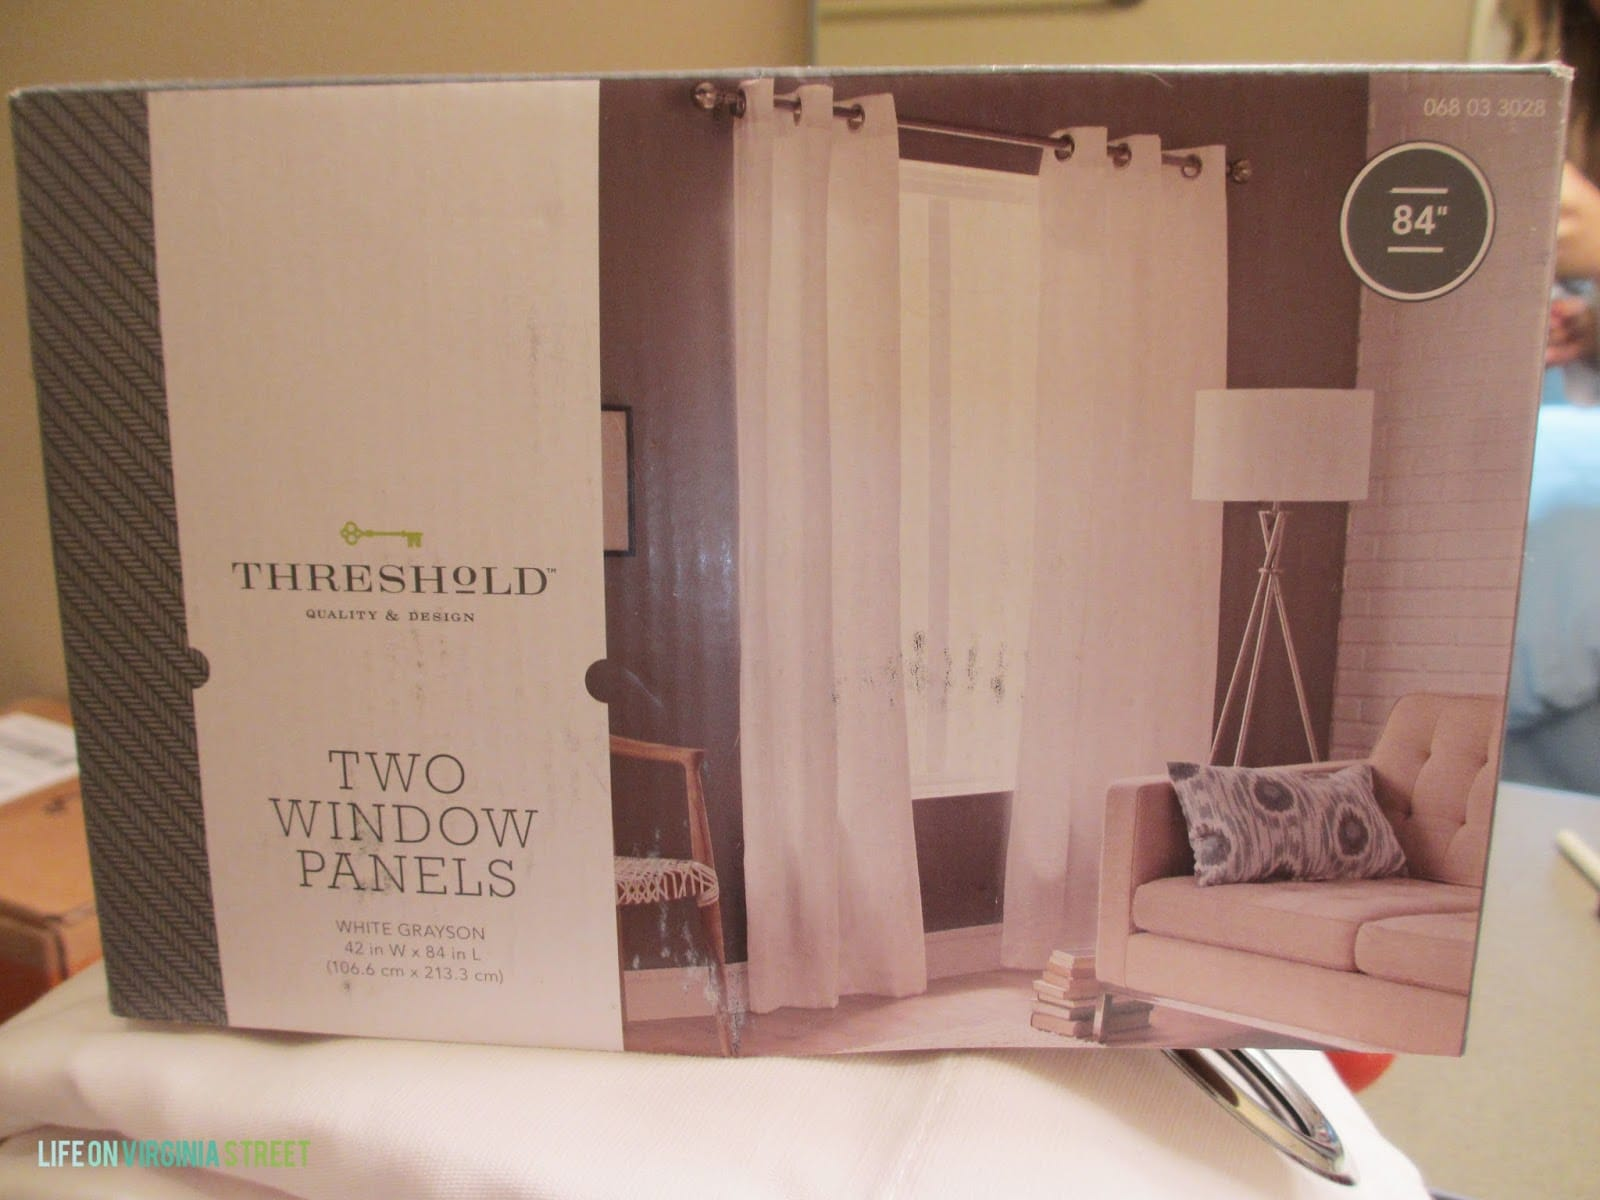 Plain white window panel curtain from target to use for my bathroom shower curtain makeover.